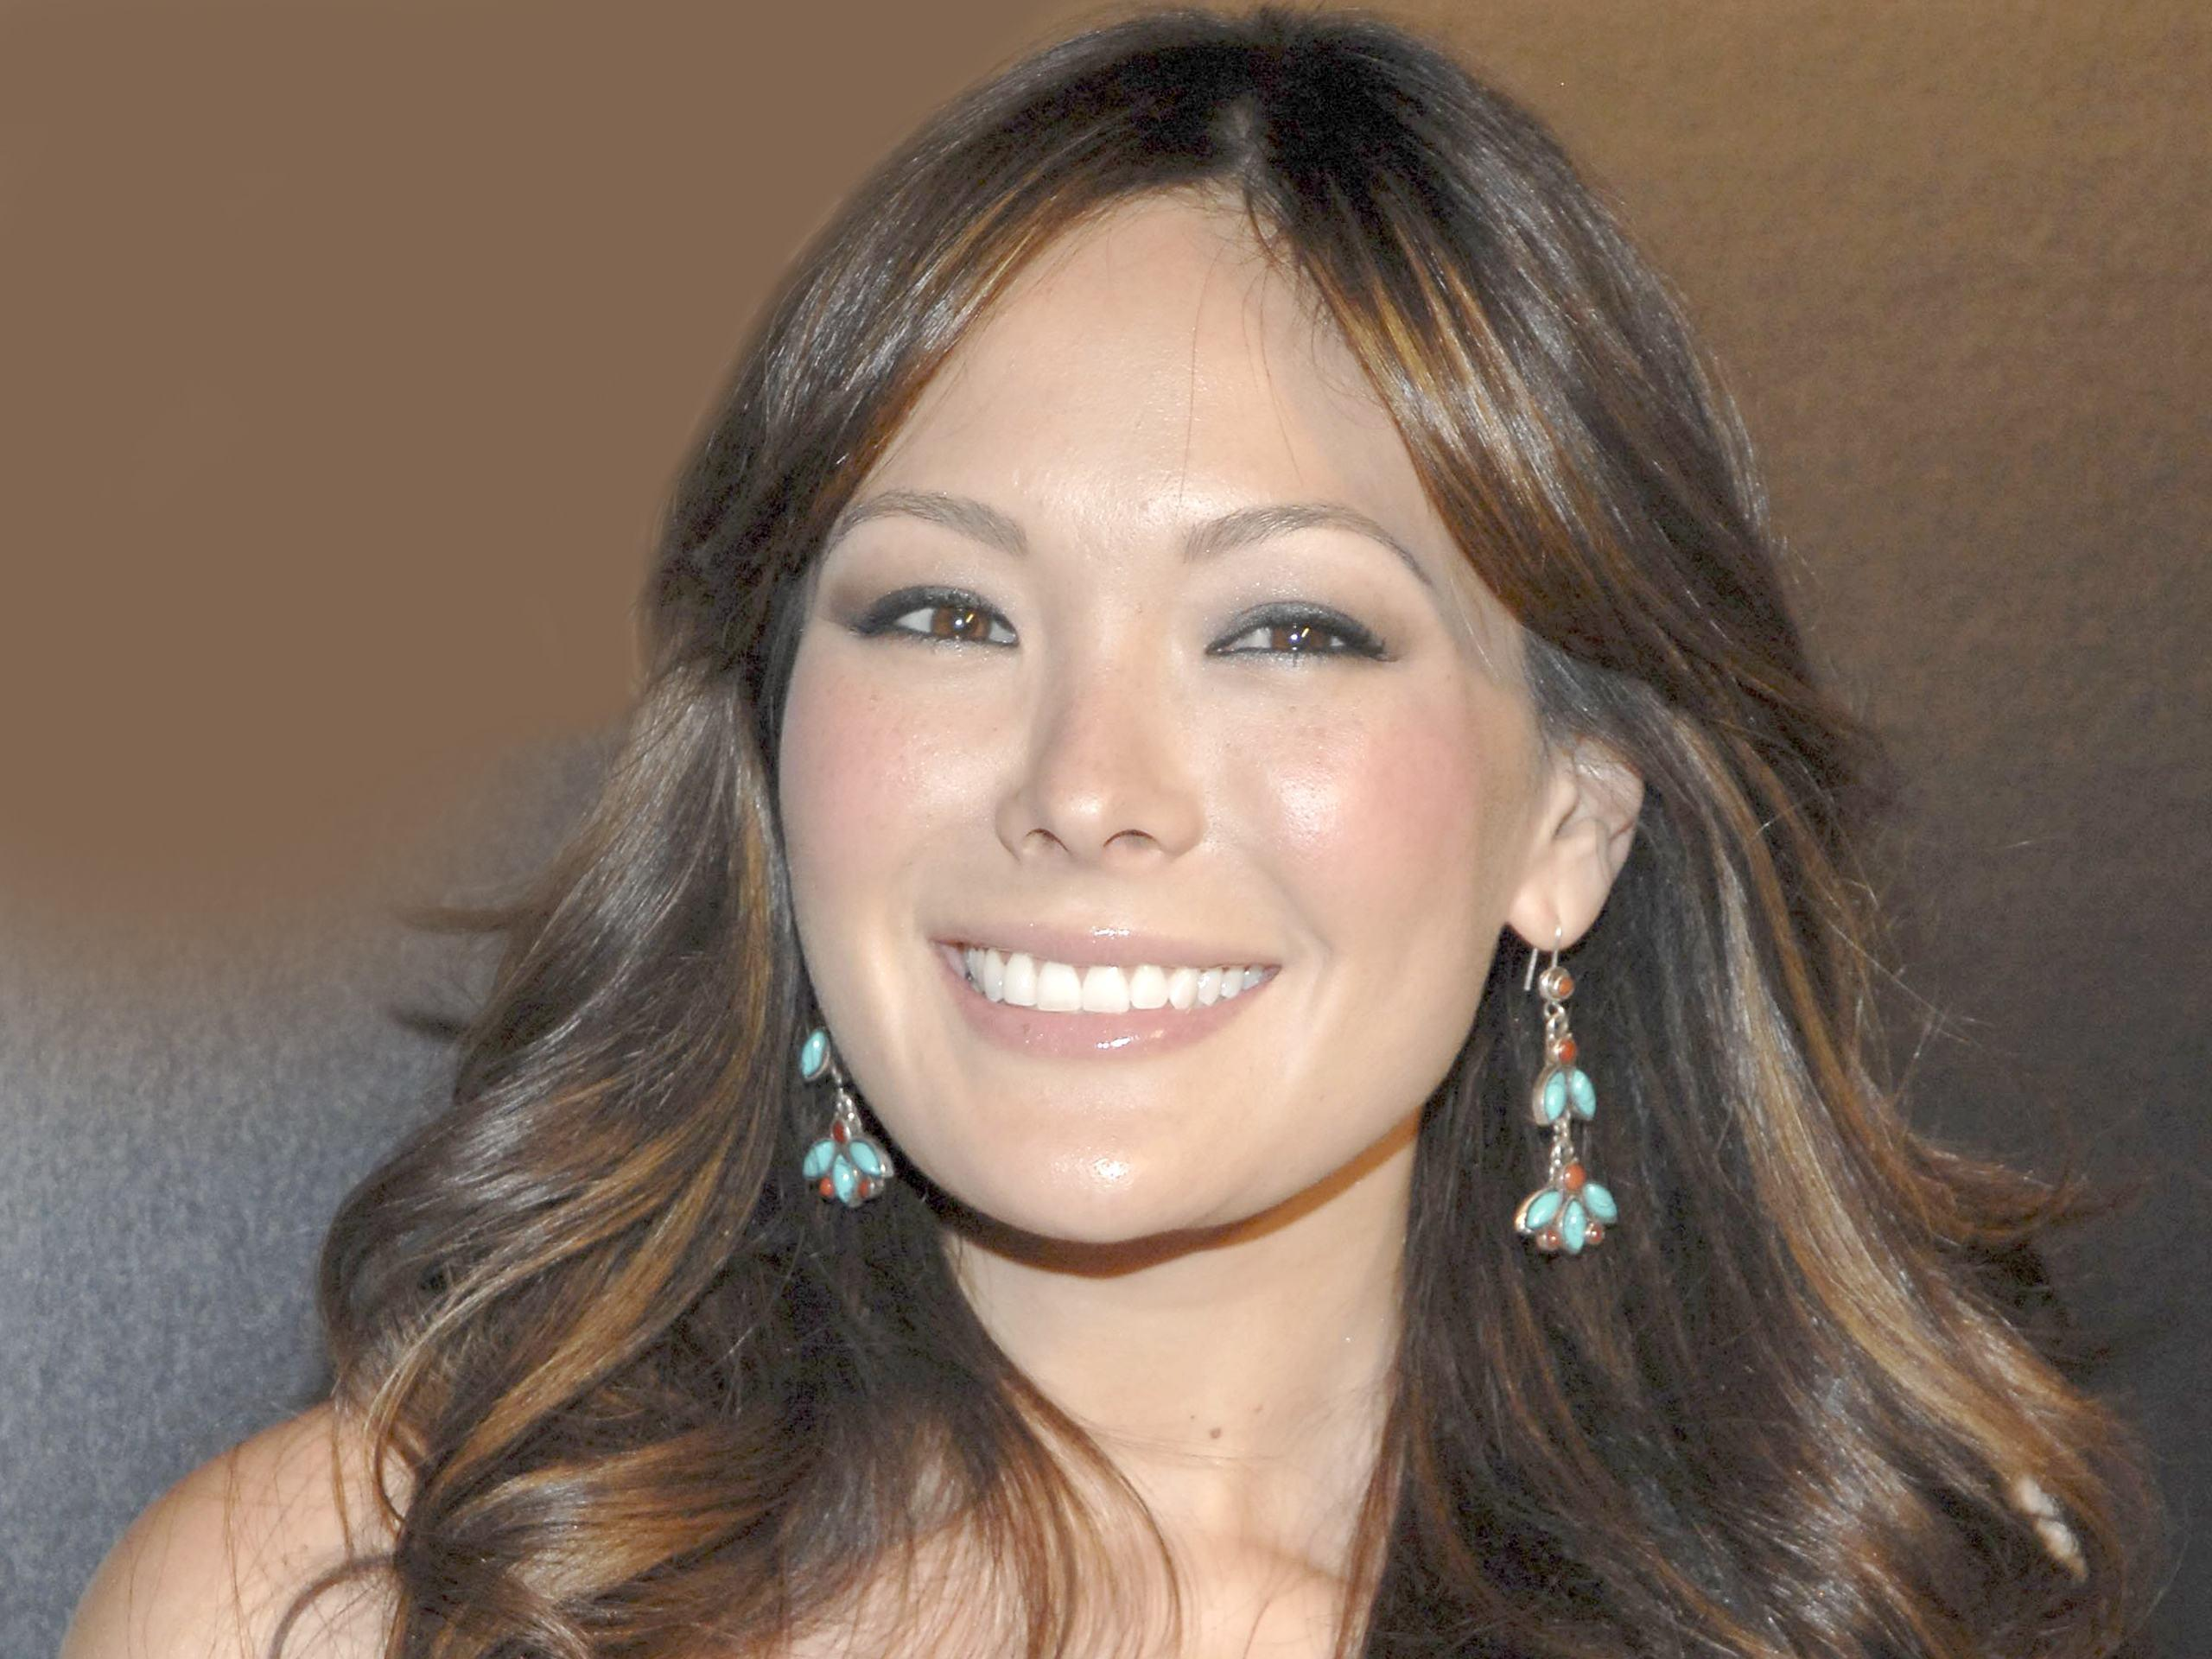 lindsay price cave lindsay price hd backgrounds price host